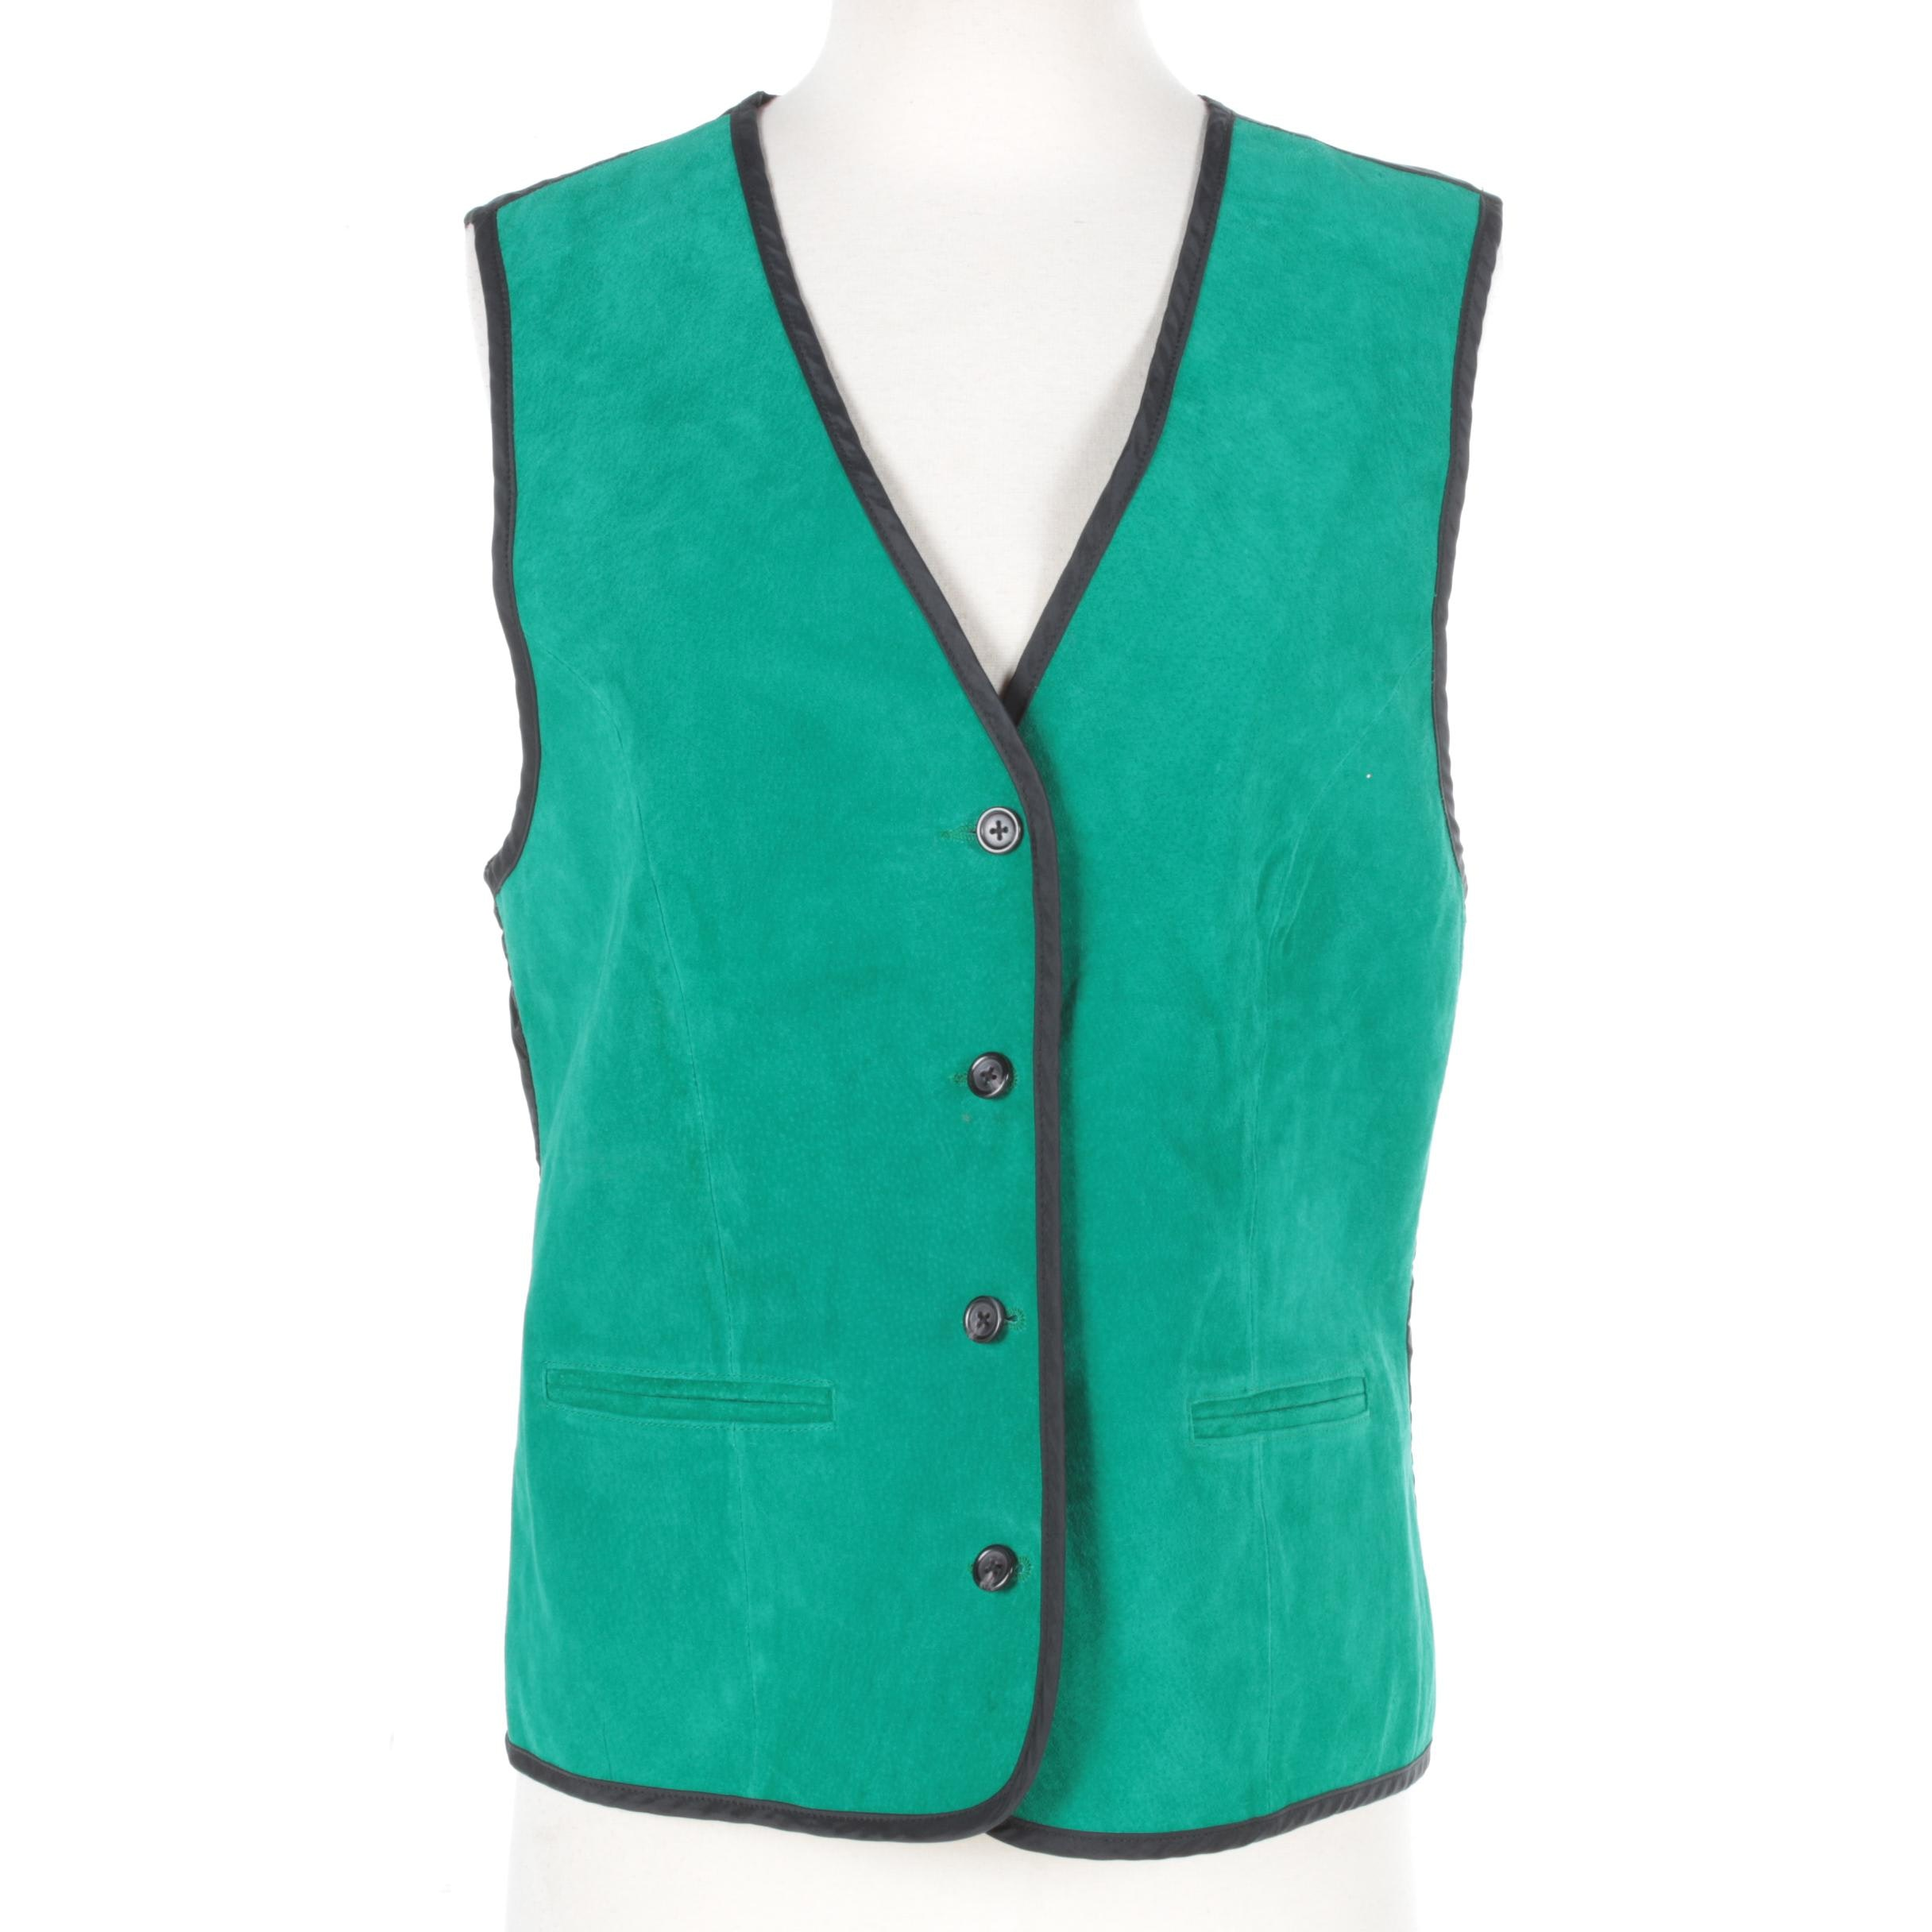 Women's Diane Von Furstenberg Green Suede Leather Vest